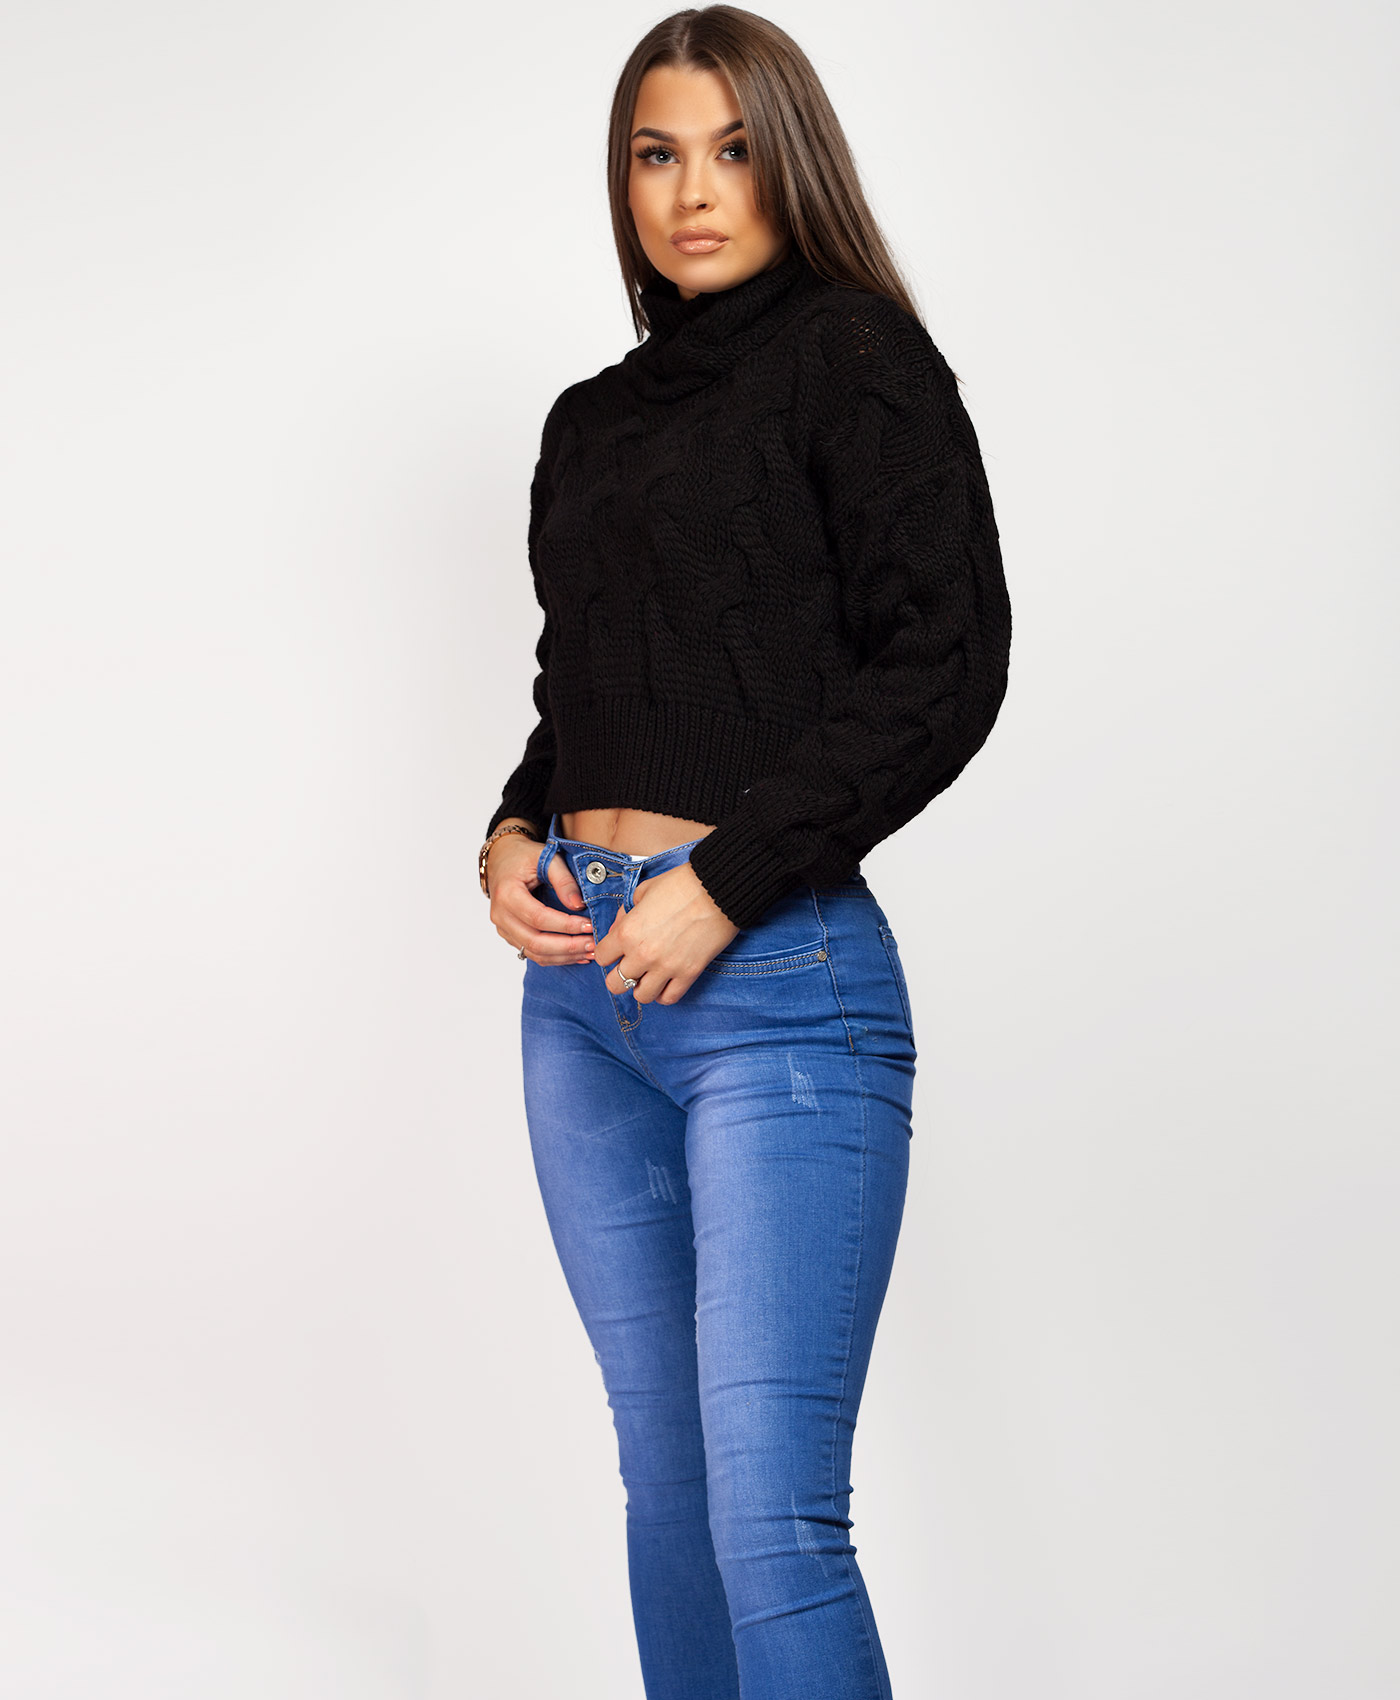 Womens-Ladies-Cable-Knitted-High-Neck-Cropped-Top-Pullover-Sweater-Chunky-Jumper thumbnail 23